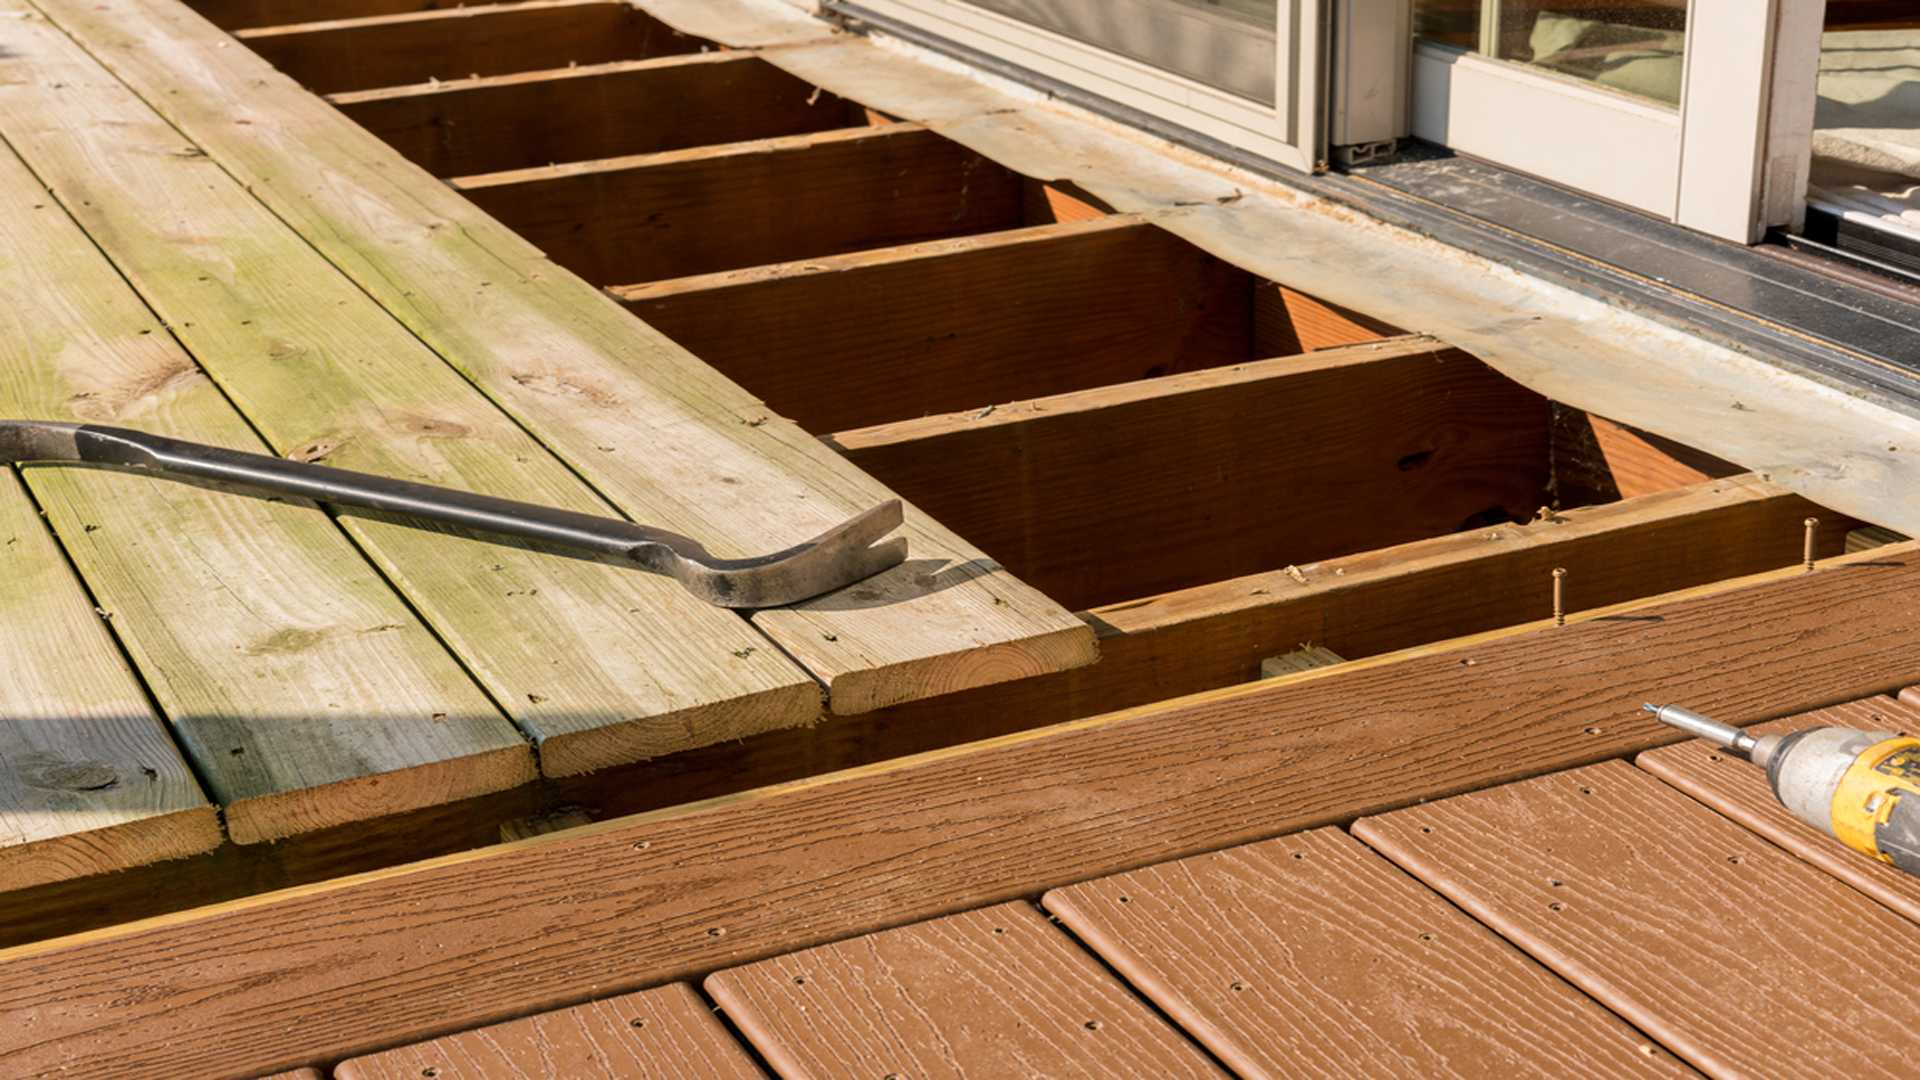 Replacing Old Wood On Deck Patio Deck Repair And Fence Repair Gutter Solutions and Home Improvements Pensacola FL 850 776 1782